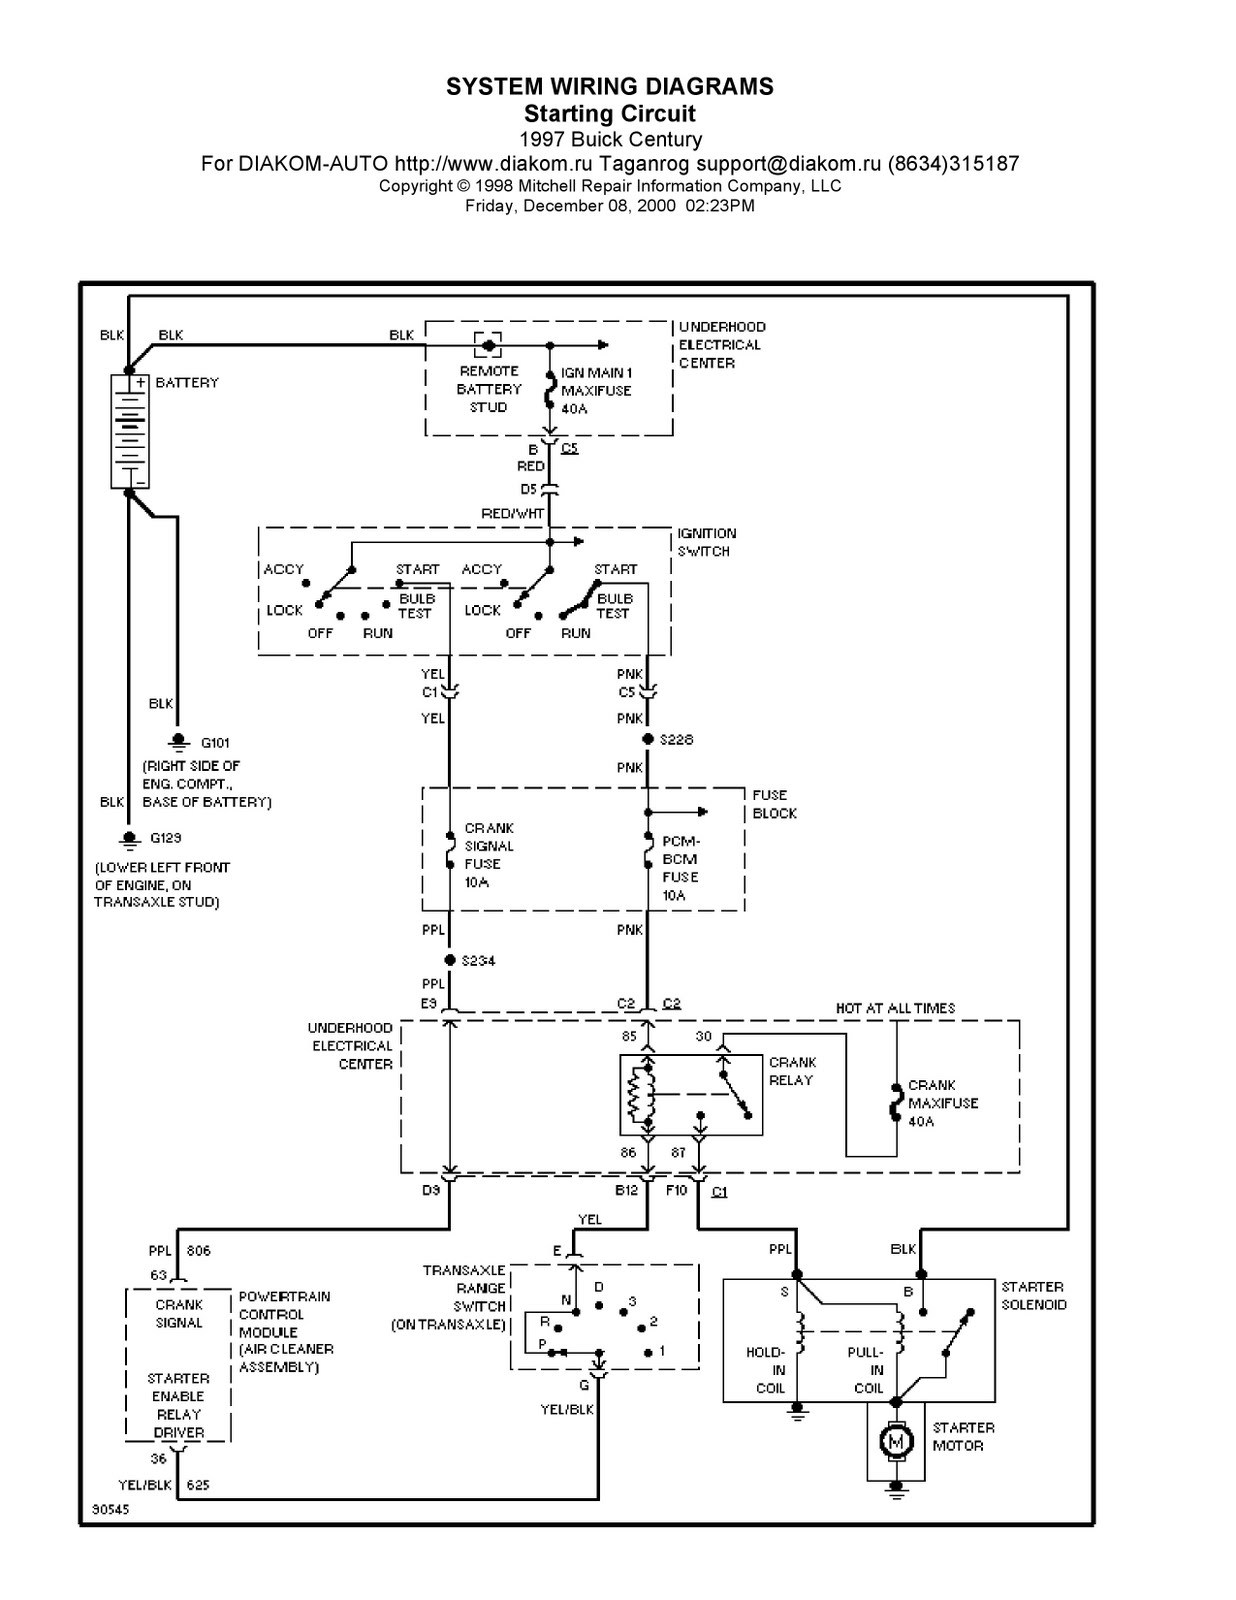 1997 Buick Century System Wiring Diagram Starting Circuit